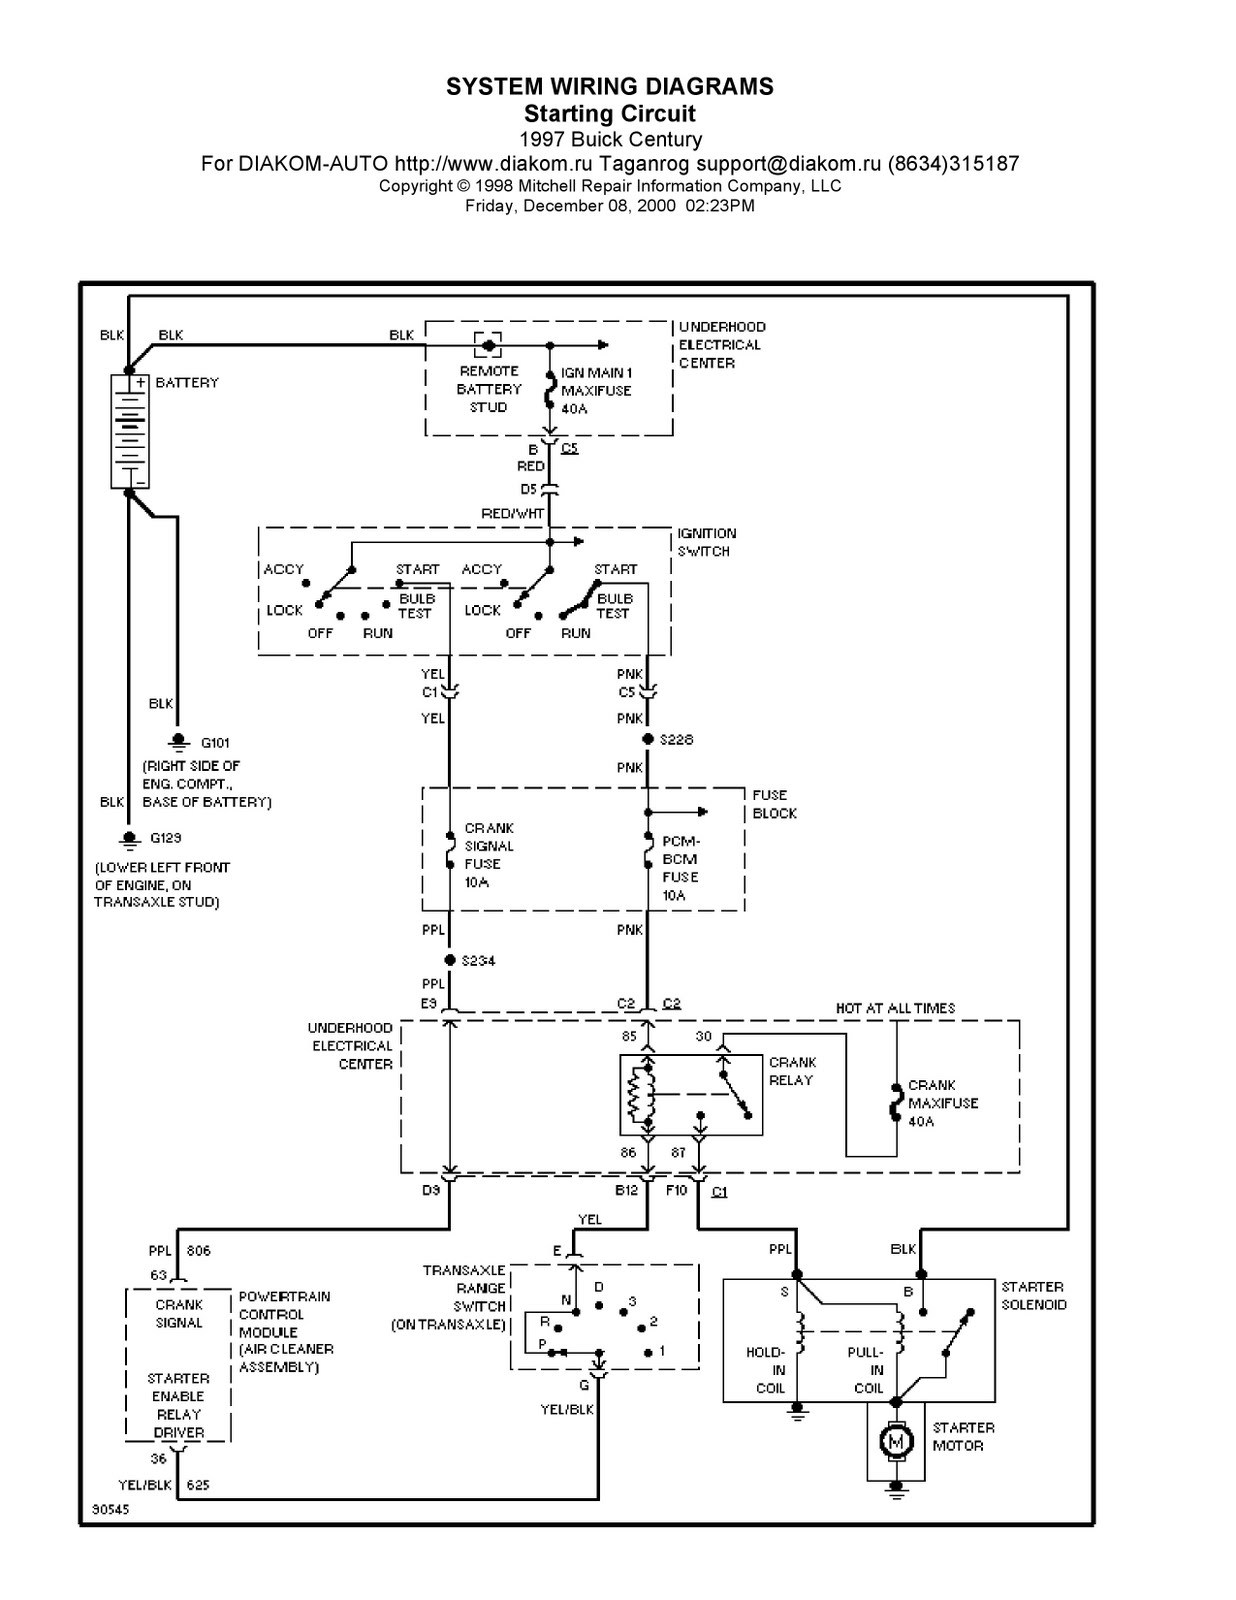 1997 Buick Century System Wiring Diagram Starting Circuit